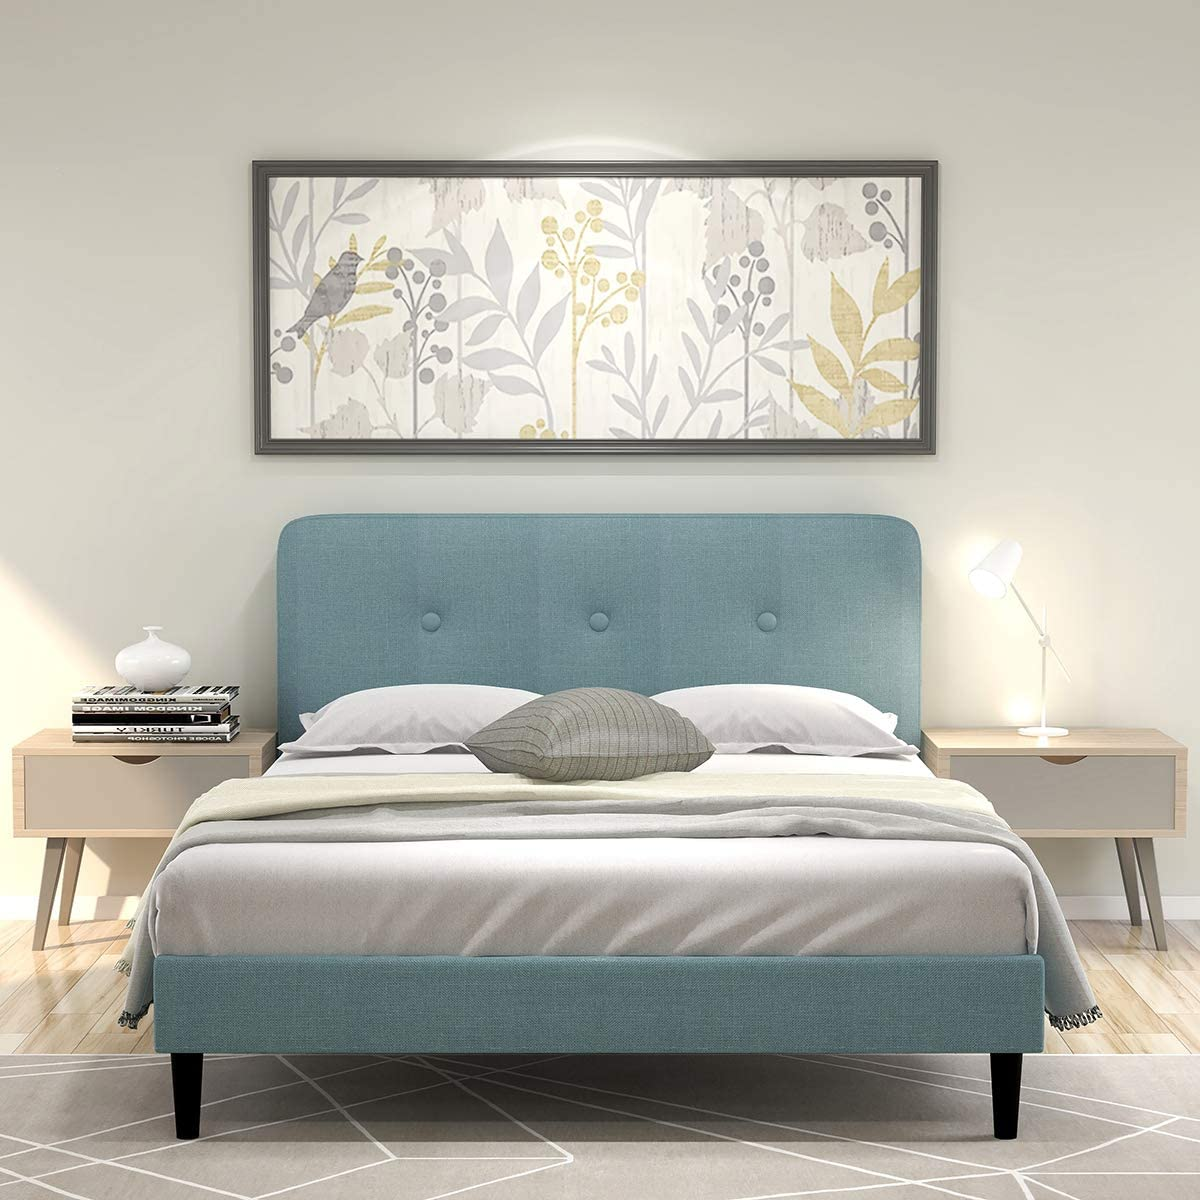 Upholstered Button Tufted Platform Bed with Headboard Strong Wood Slat Support Mattress Foundation Easy Assembly Blue Queen